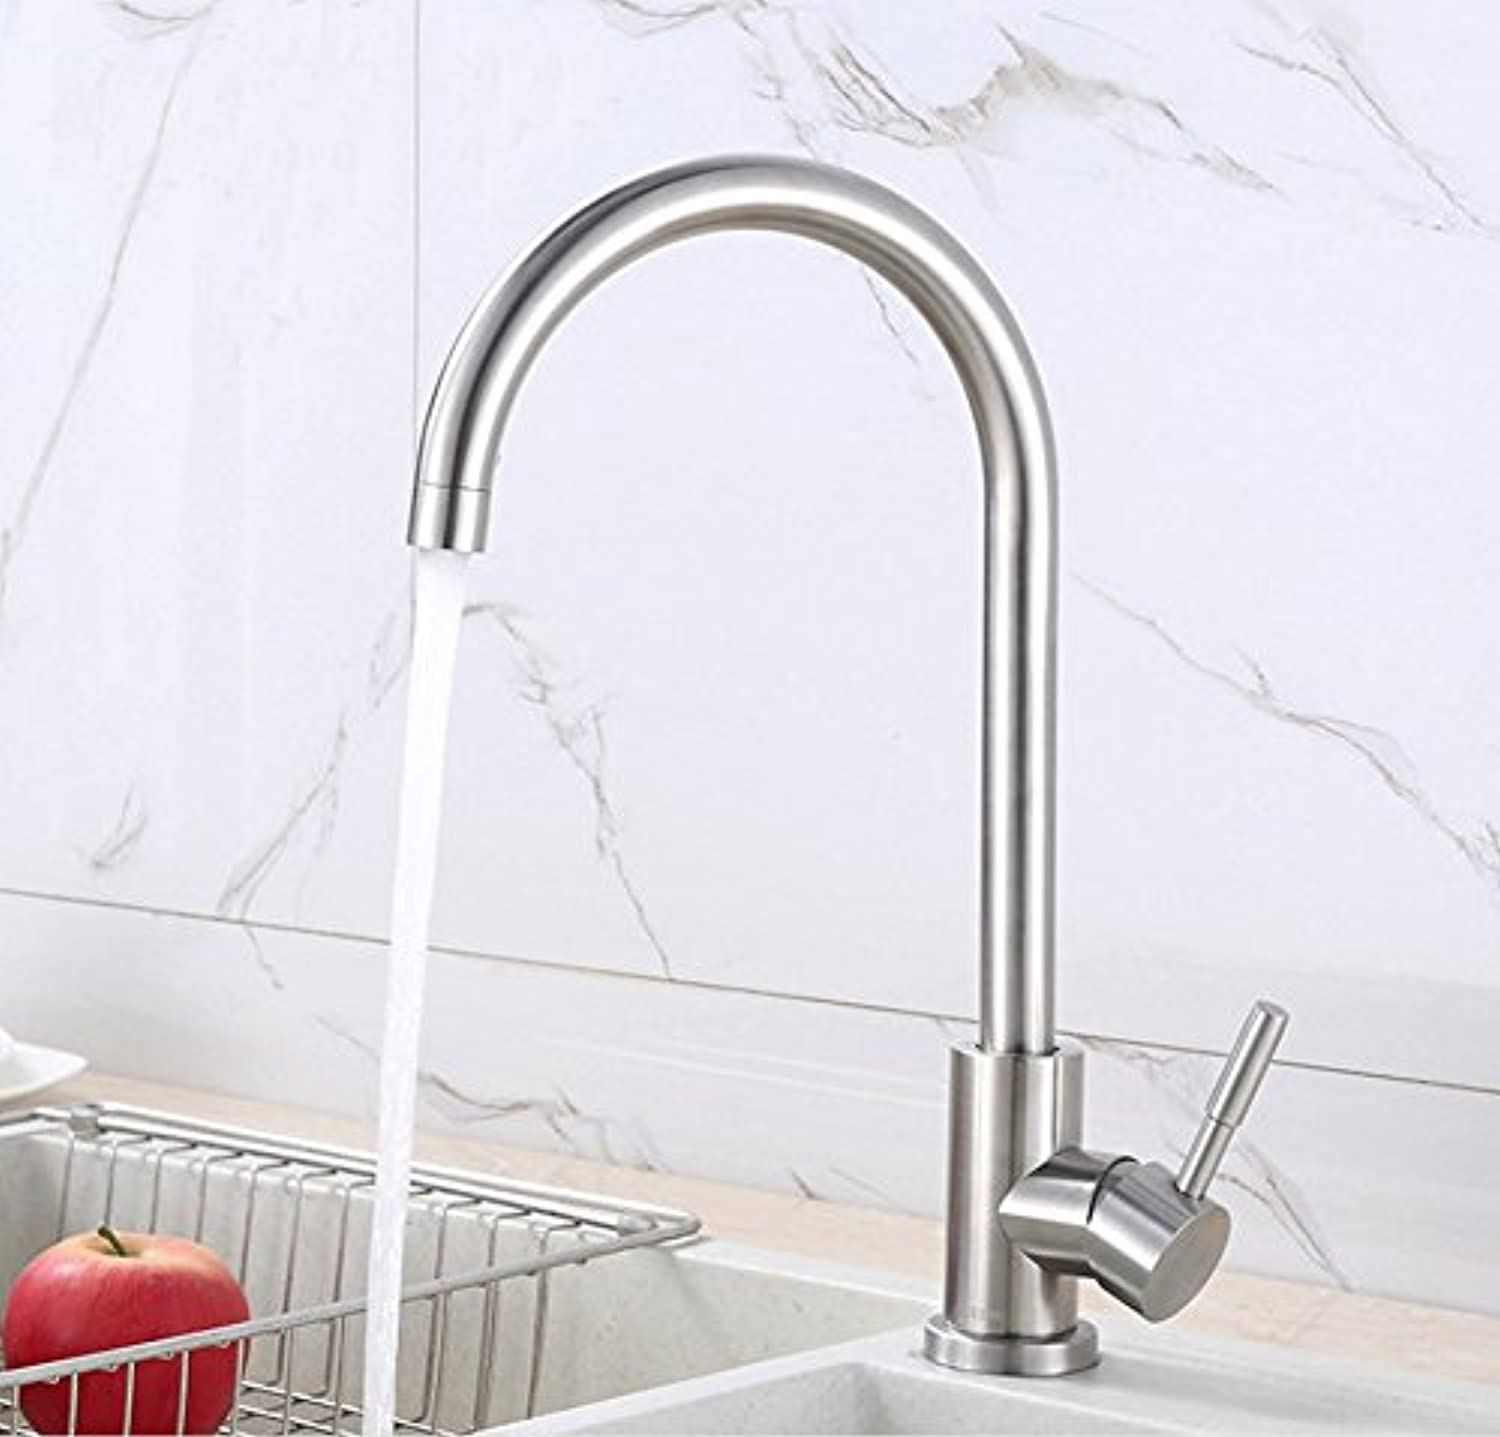 WUTONG 304 stainless steel sink big bend faucet hot and cold kitchen basin faucet